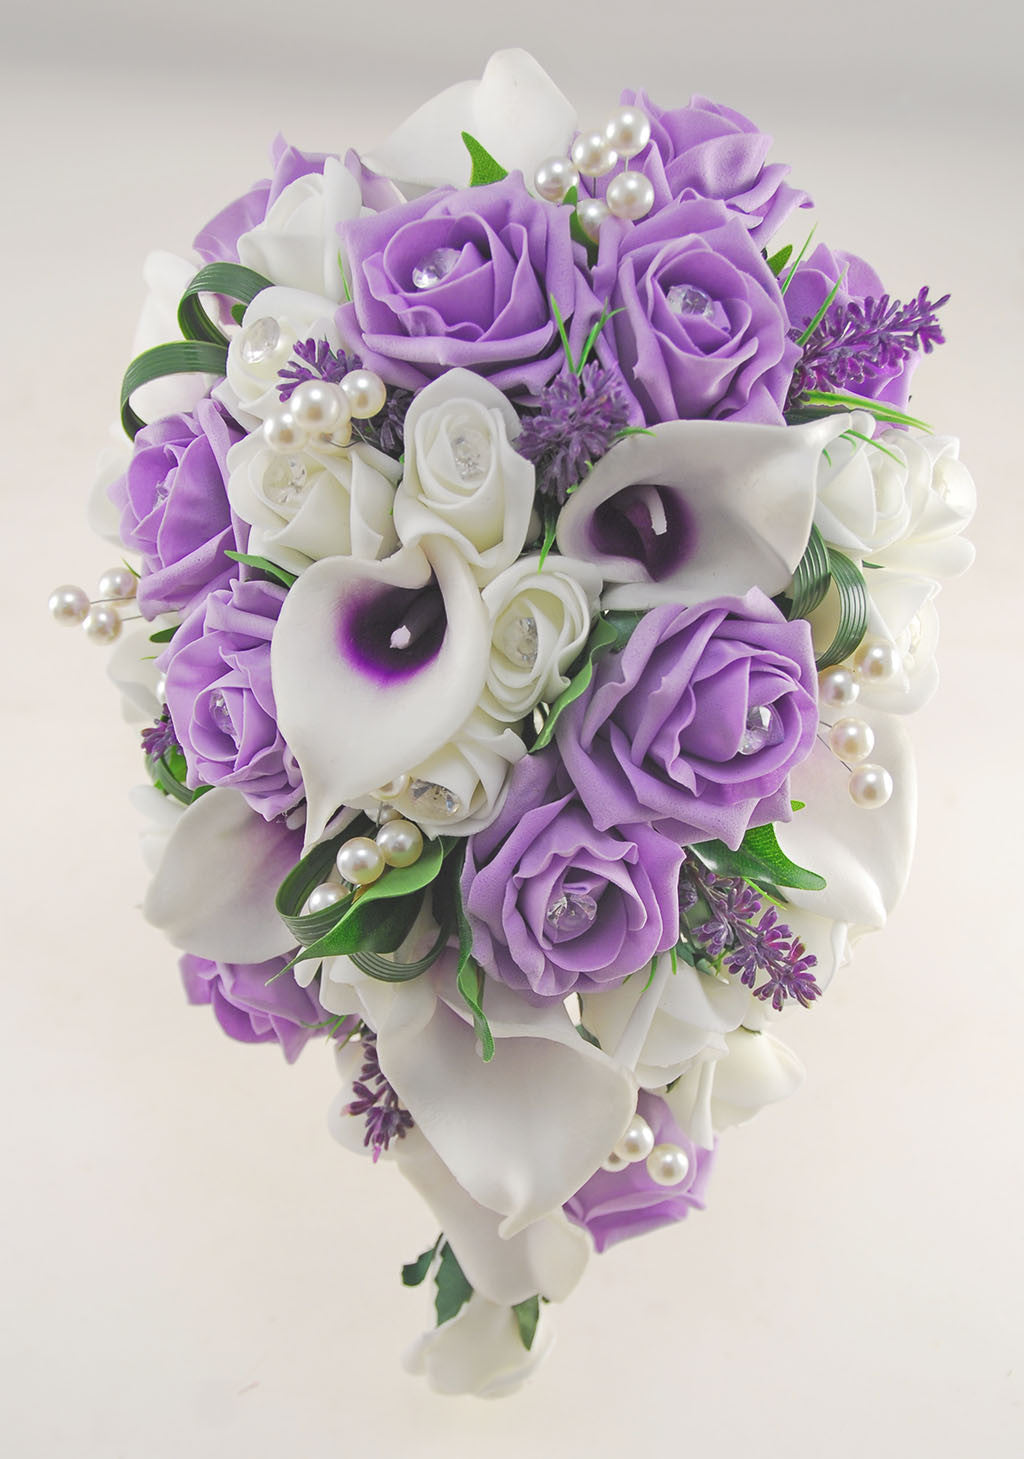 Louise lilac ivory calla lily rose wedding flower package louise lilac ivory calla lily rose wedding flower package brides shower bouquet bridesmaids posy grooms buttonhole izmirmasajfo